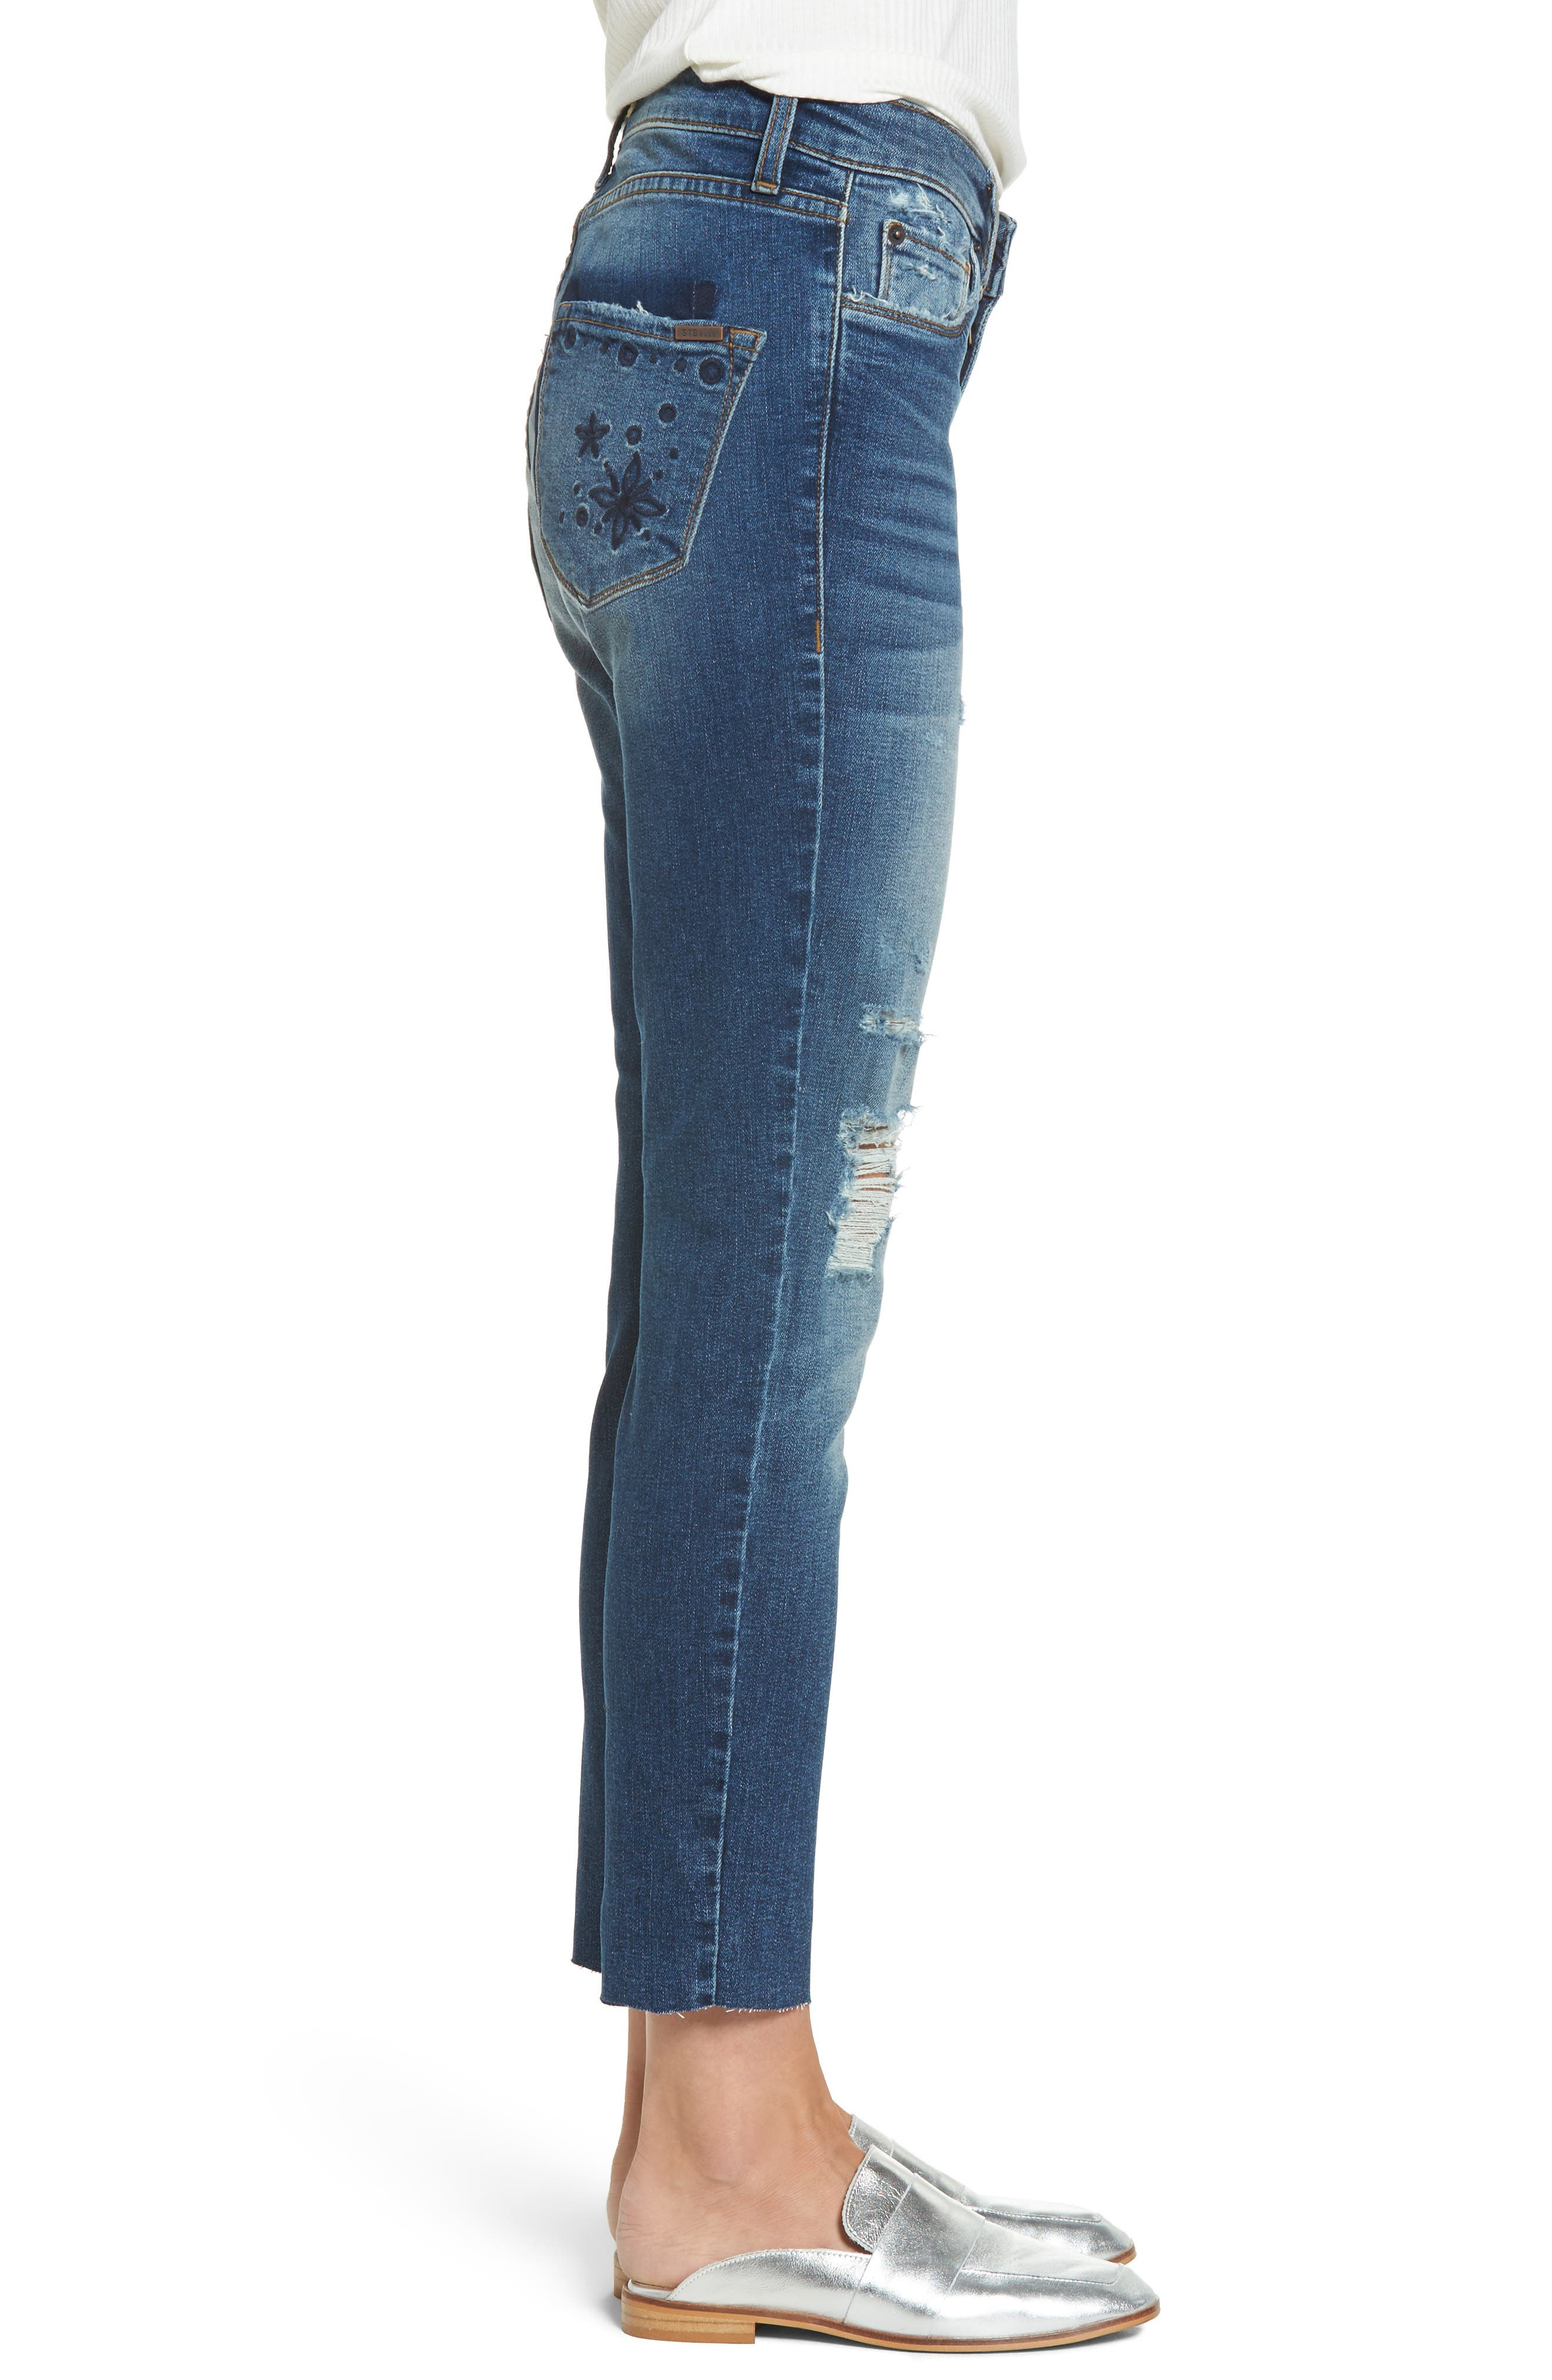 Taylor Distressed and Embroidered Straight Leg Jeans,                             Alternate thumbnail 3, color,                             Rosedale